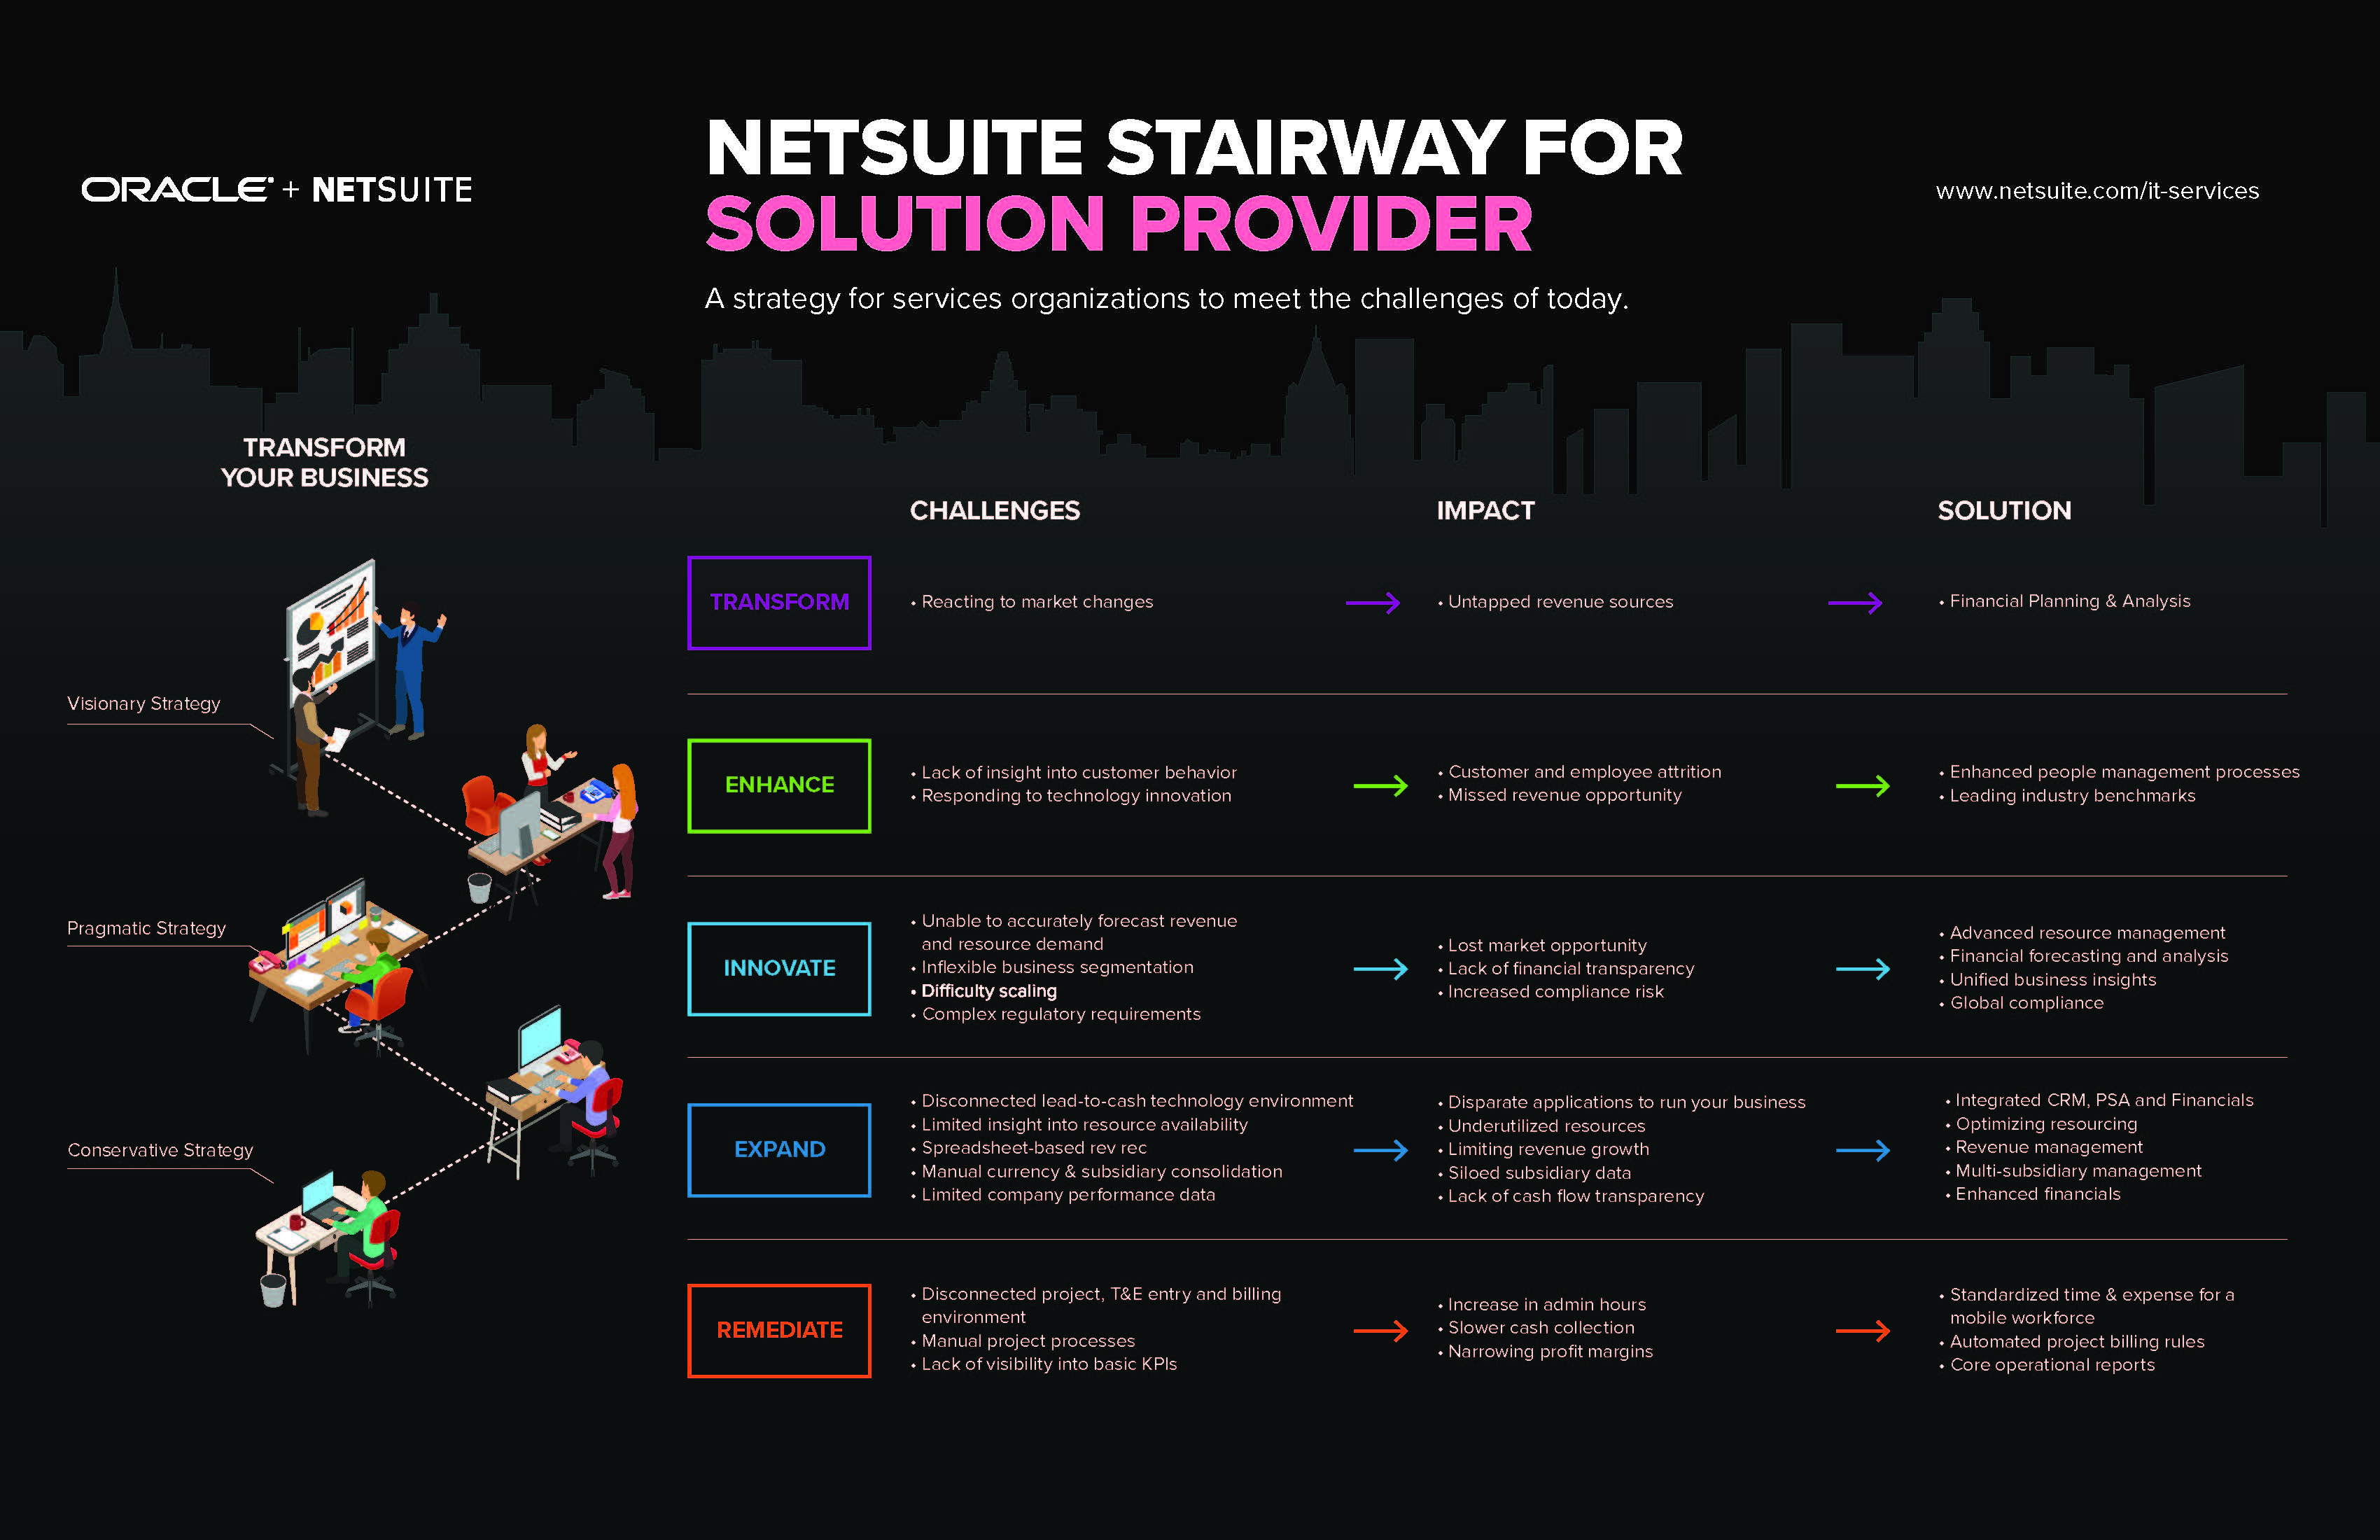 NS Solution Provider Stairway